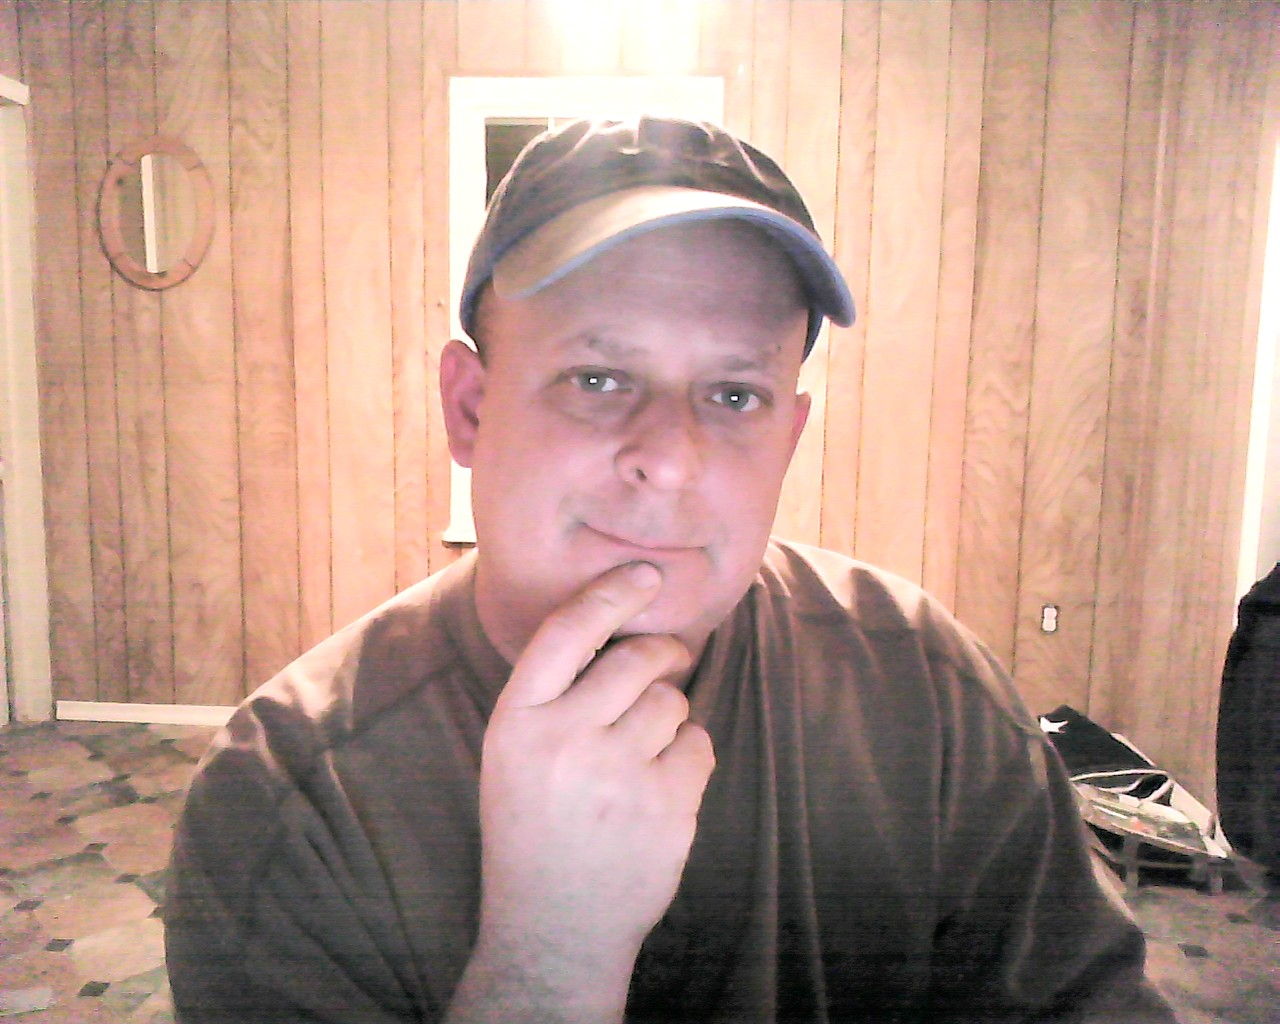 Gay SugarDaddy profile loveinpagville